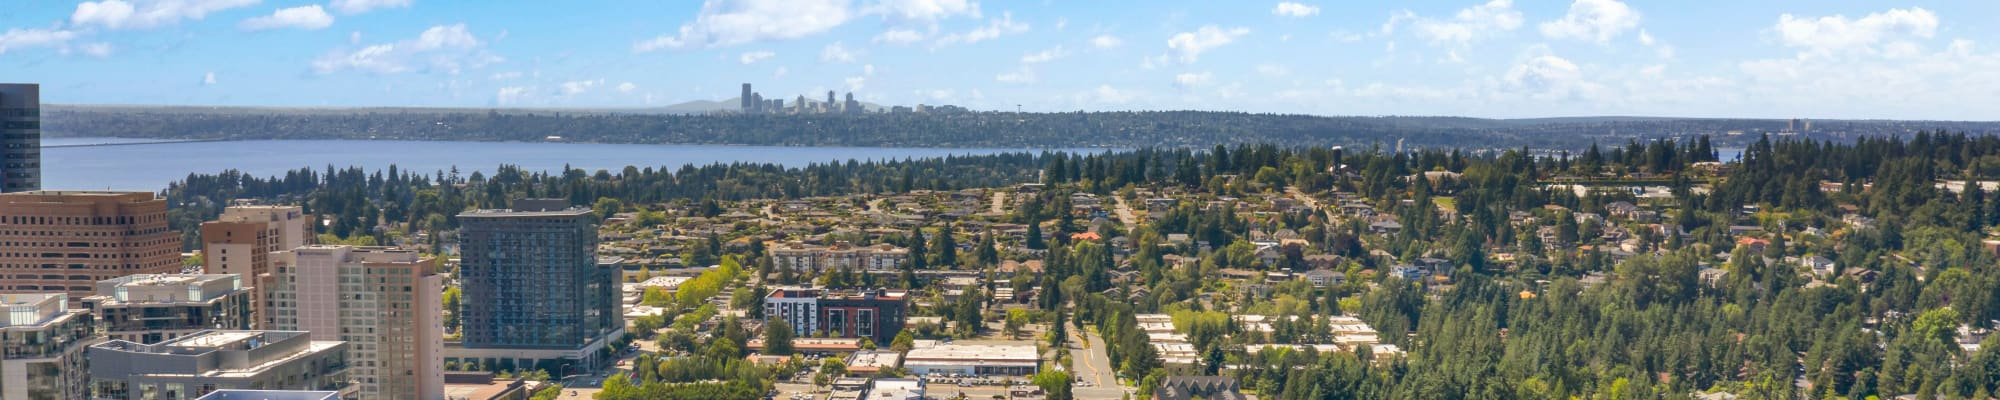 Our community at The Bellettini in Bellevue, Washington